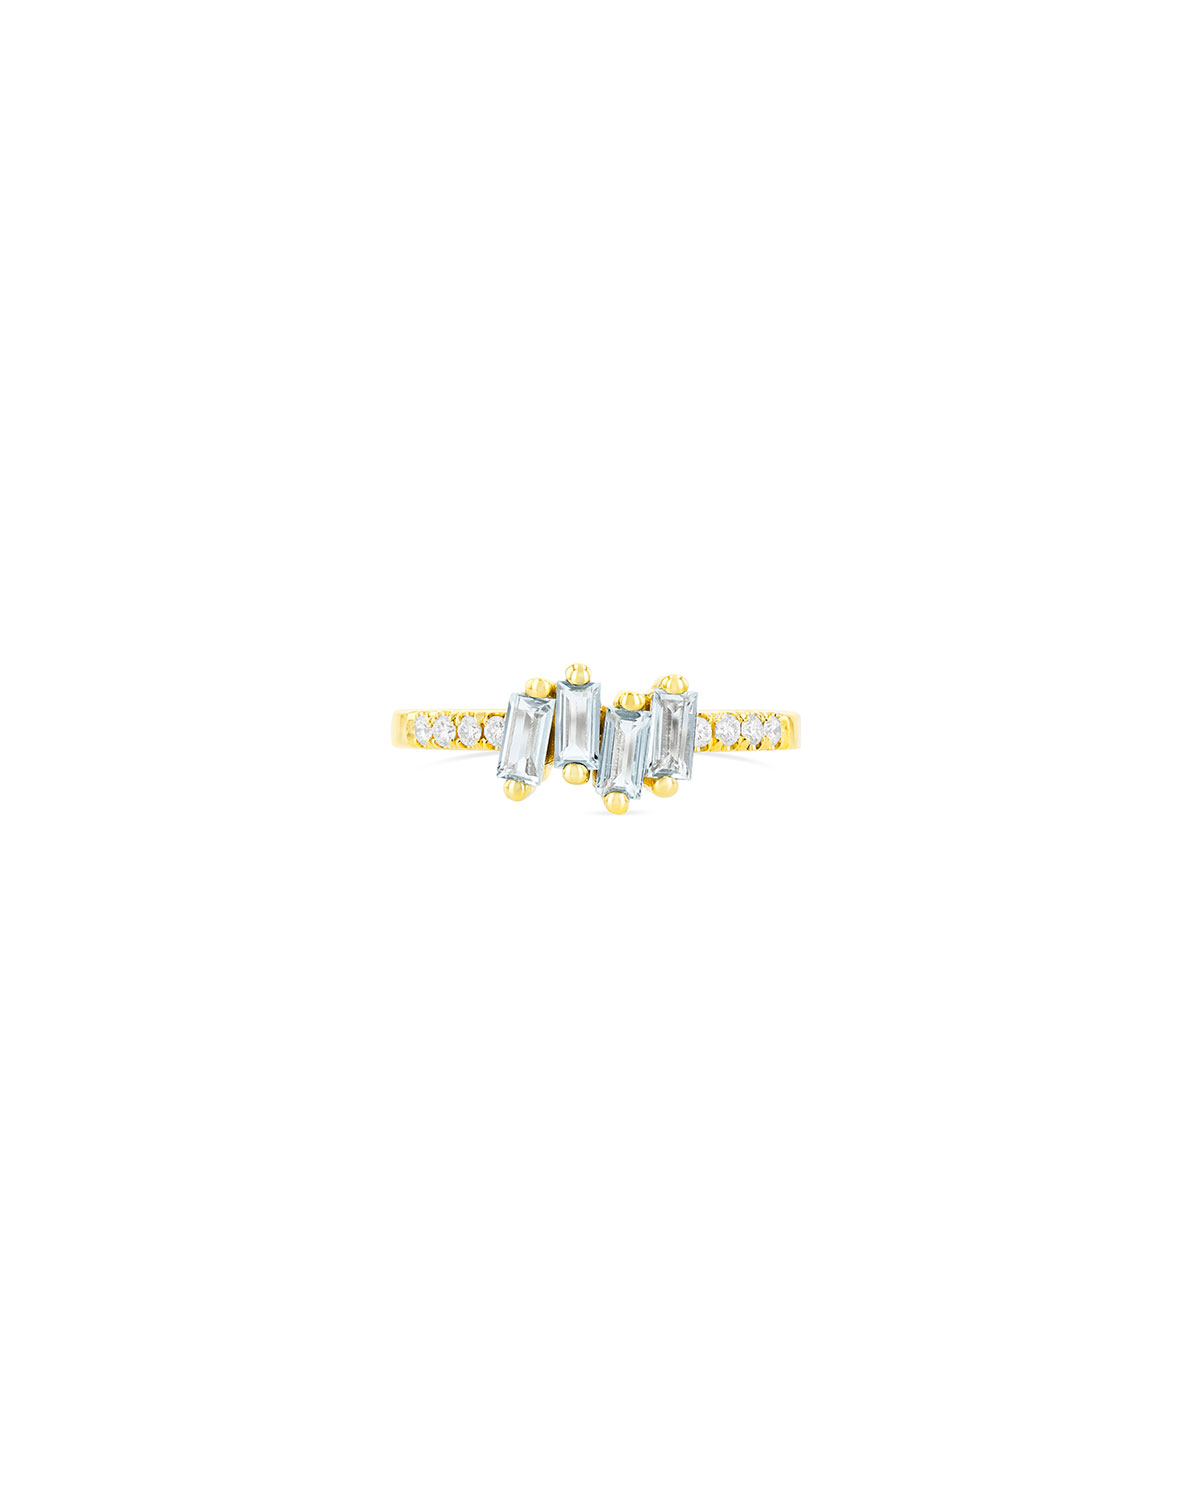 14k Yellow Gold Stacking Ring in Blue Topaz and Diamonds